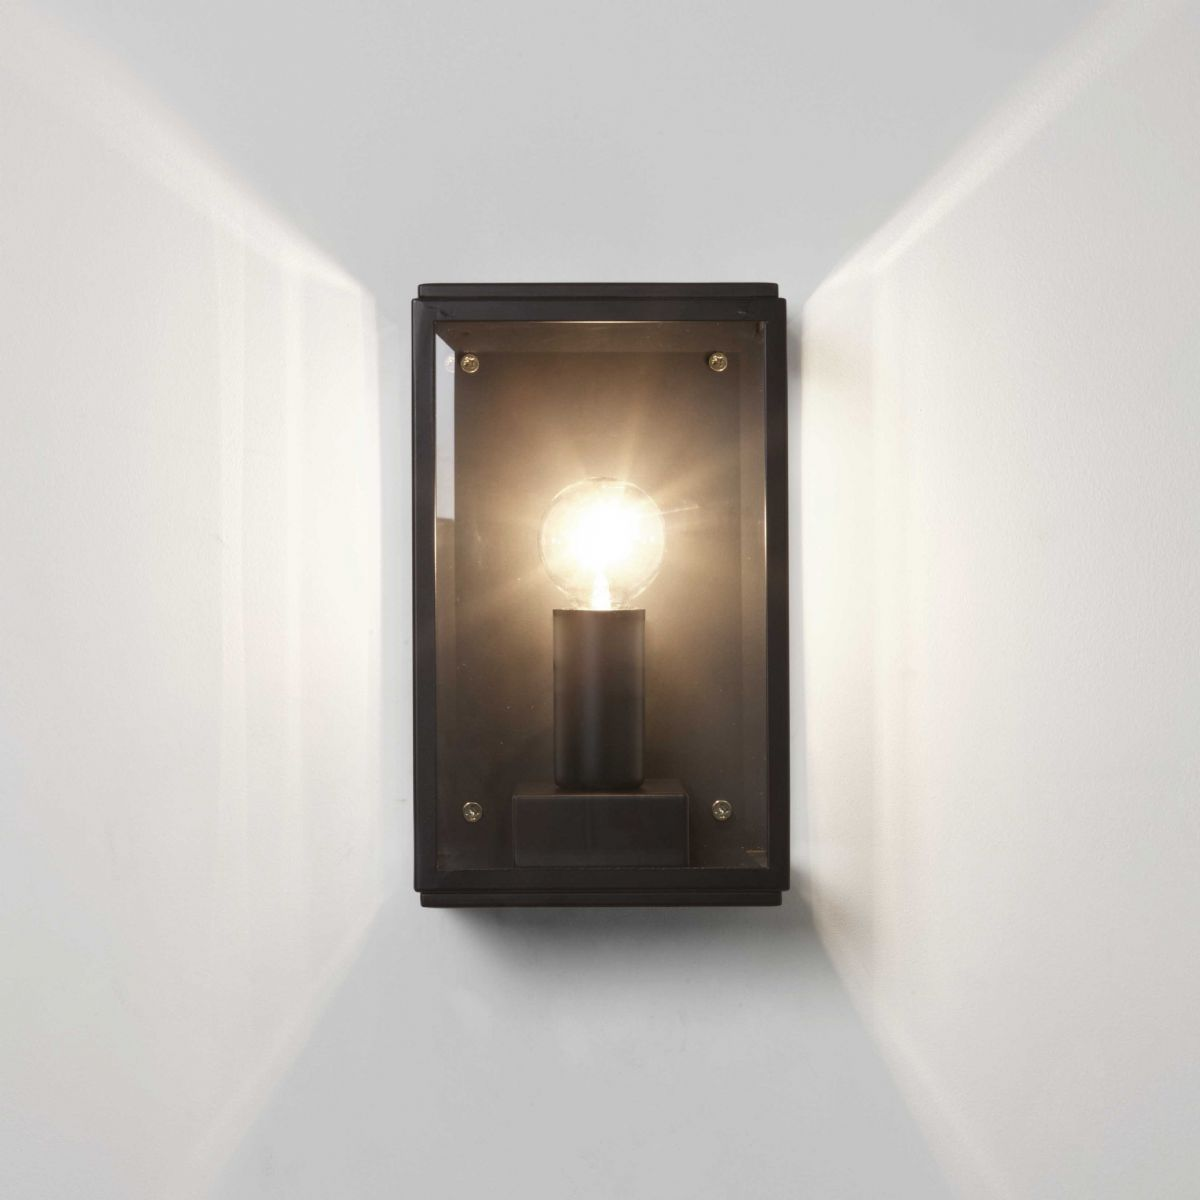 Astro Homefield 130 wall light black 7590